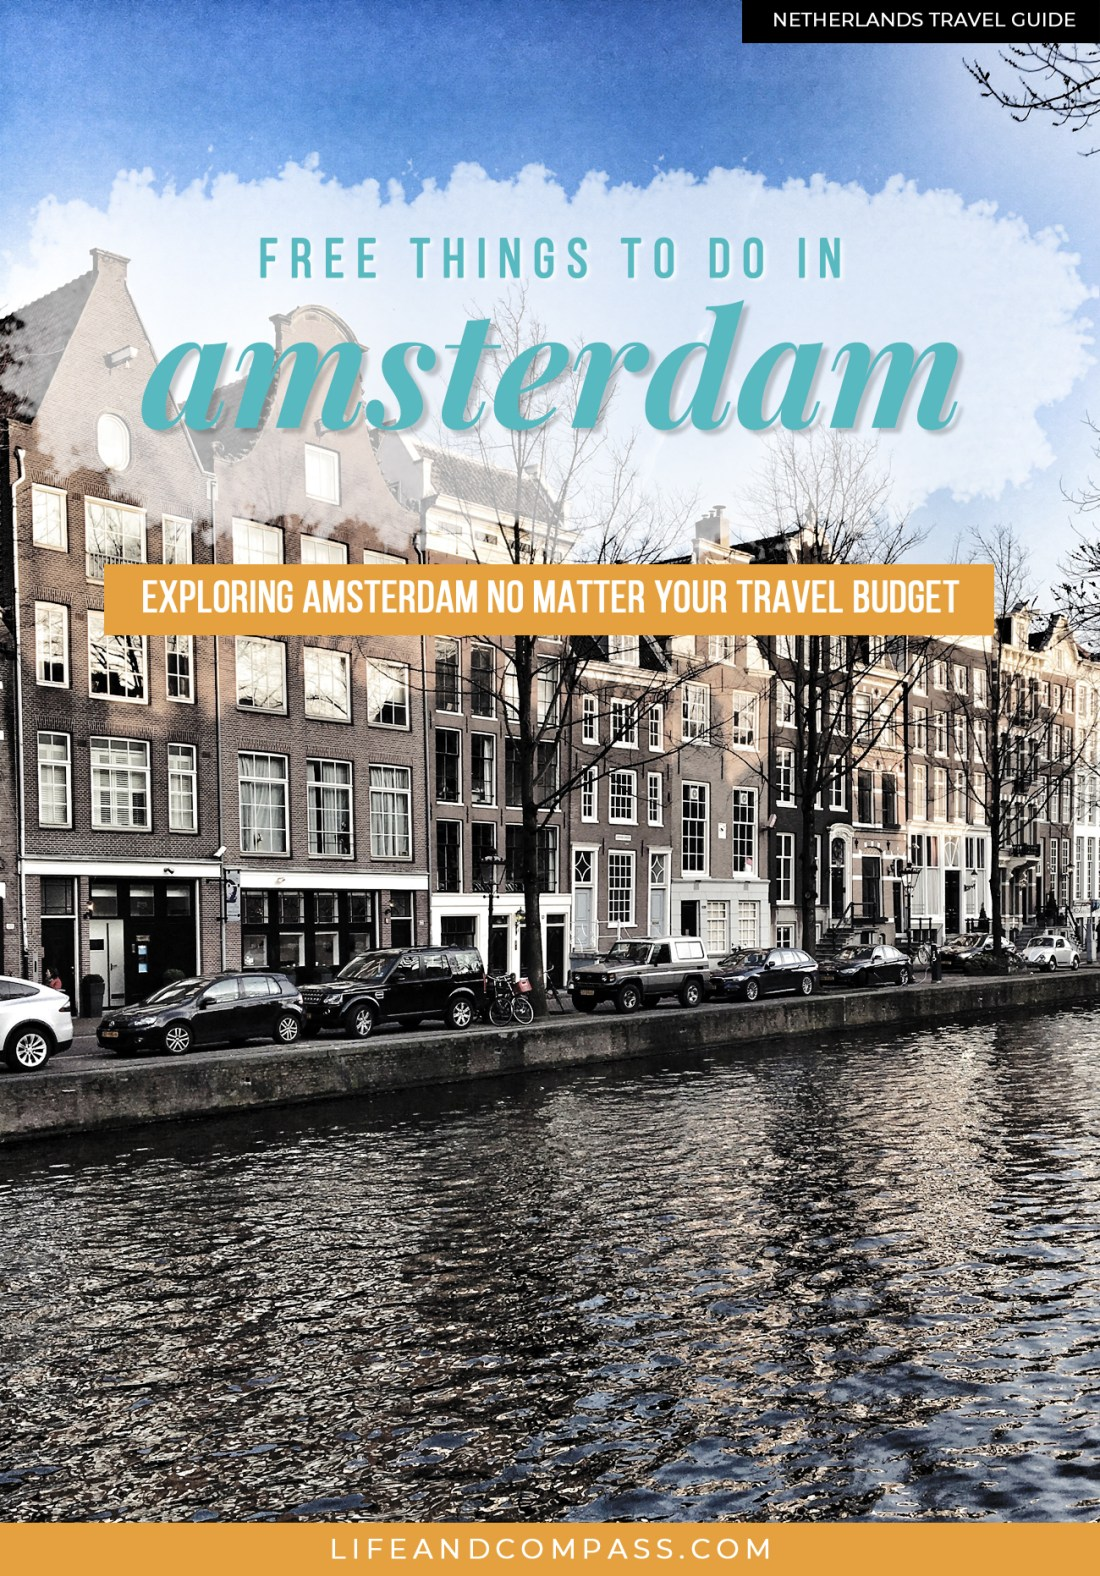 As a major tourist attraction, I thought it was it's very difficult to find free things to do in Amsterdam. I've put together a list of free activities for all ages so you can plan your trip more efficiently!